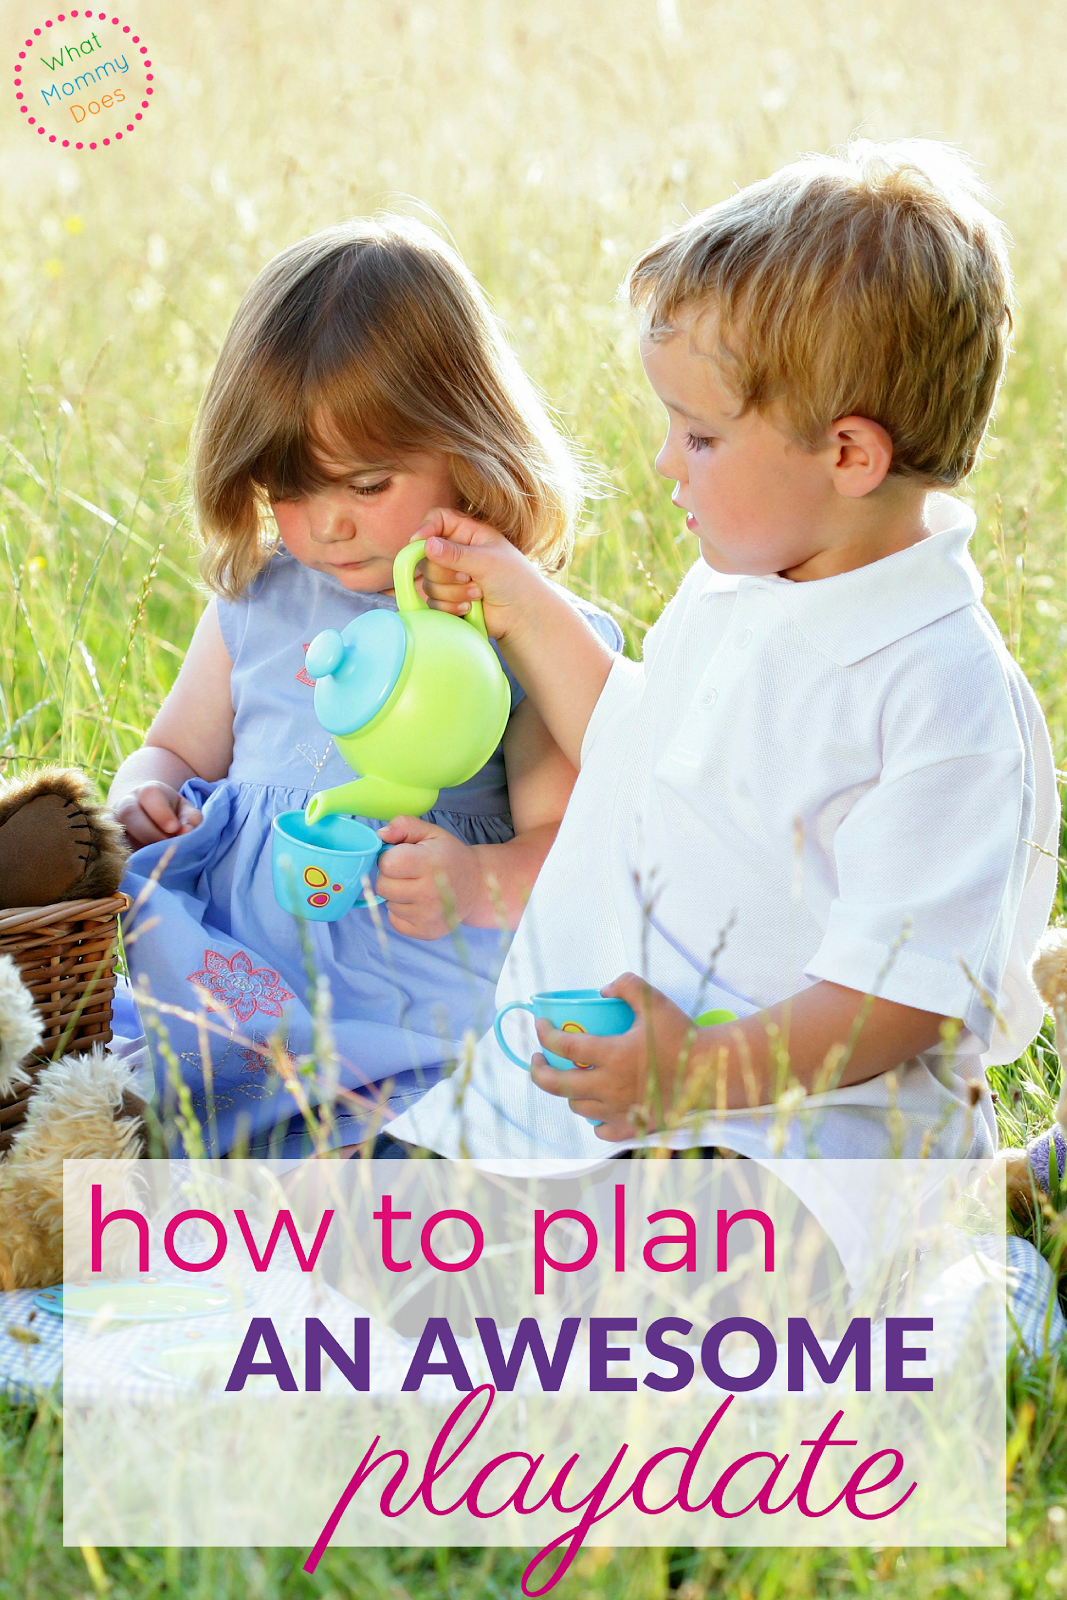 How to Plan an Awesome Playdate - Learn the tips and tricks you need to have a successful playdate for your children and their friends!